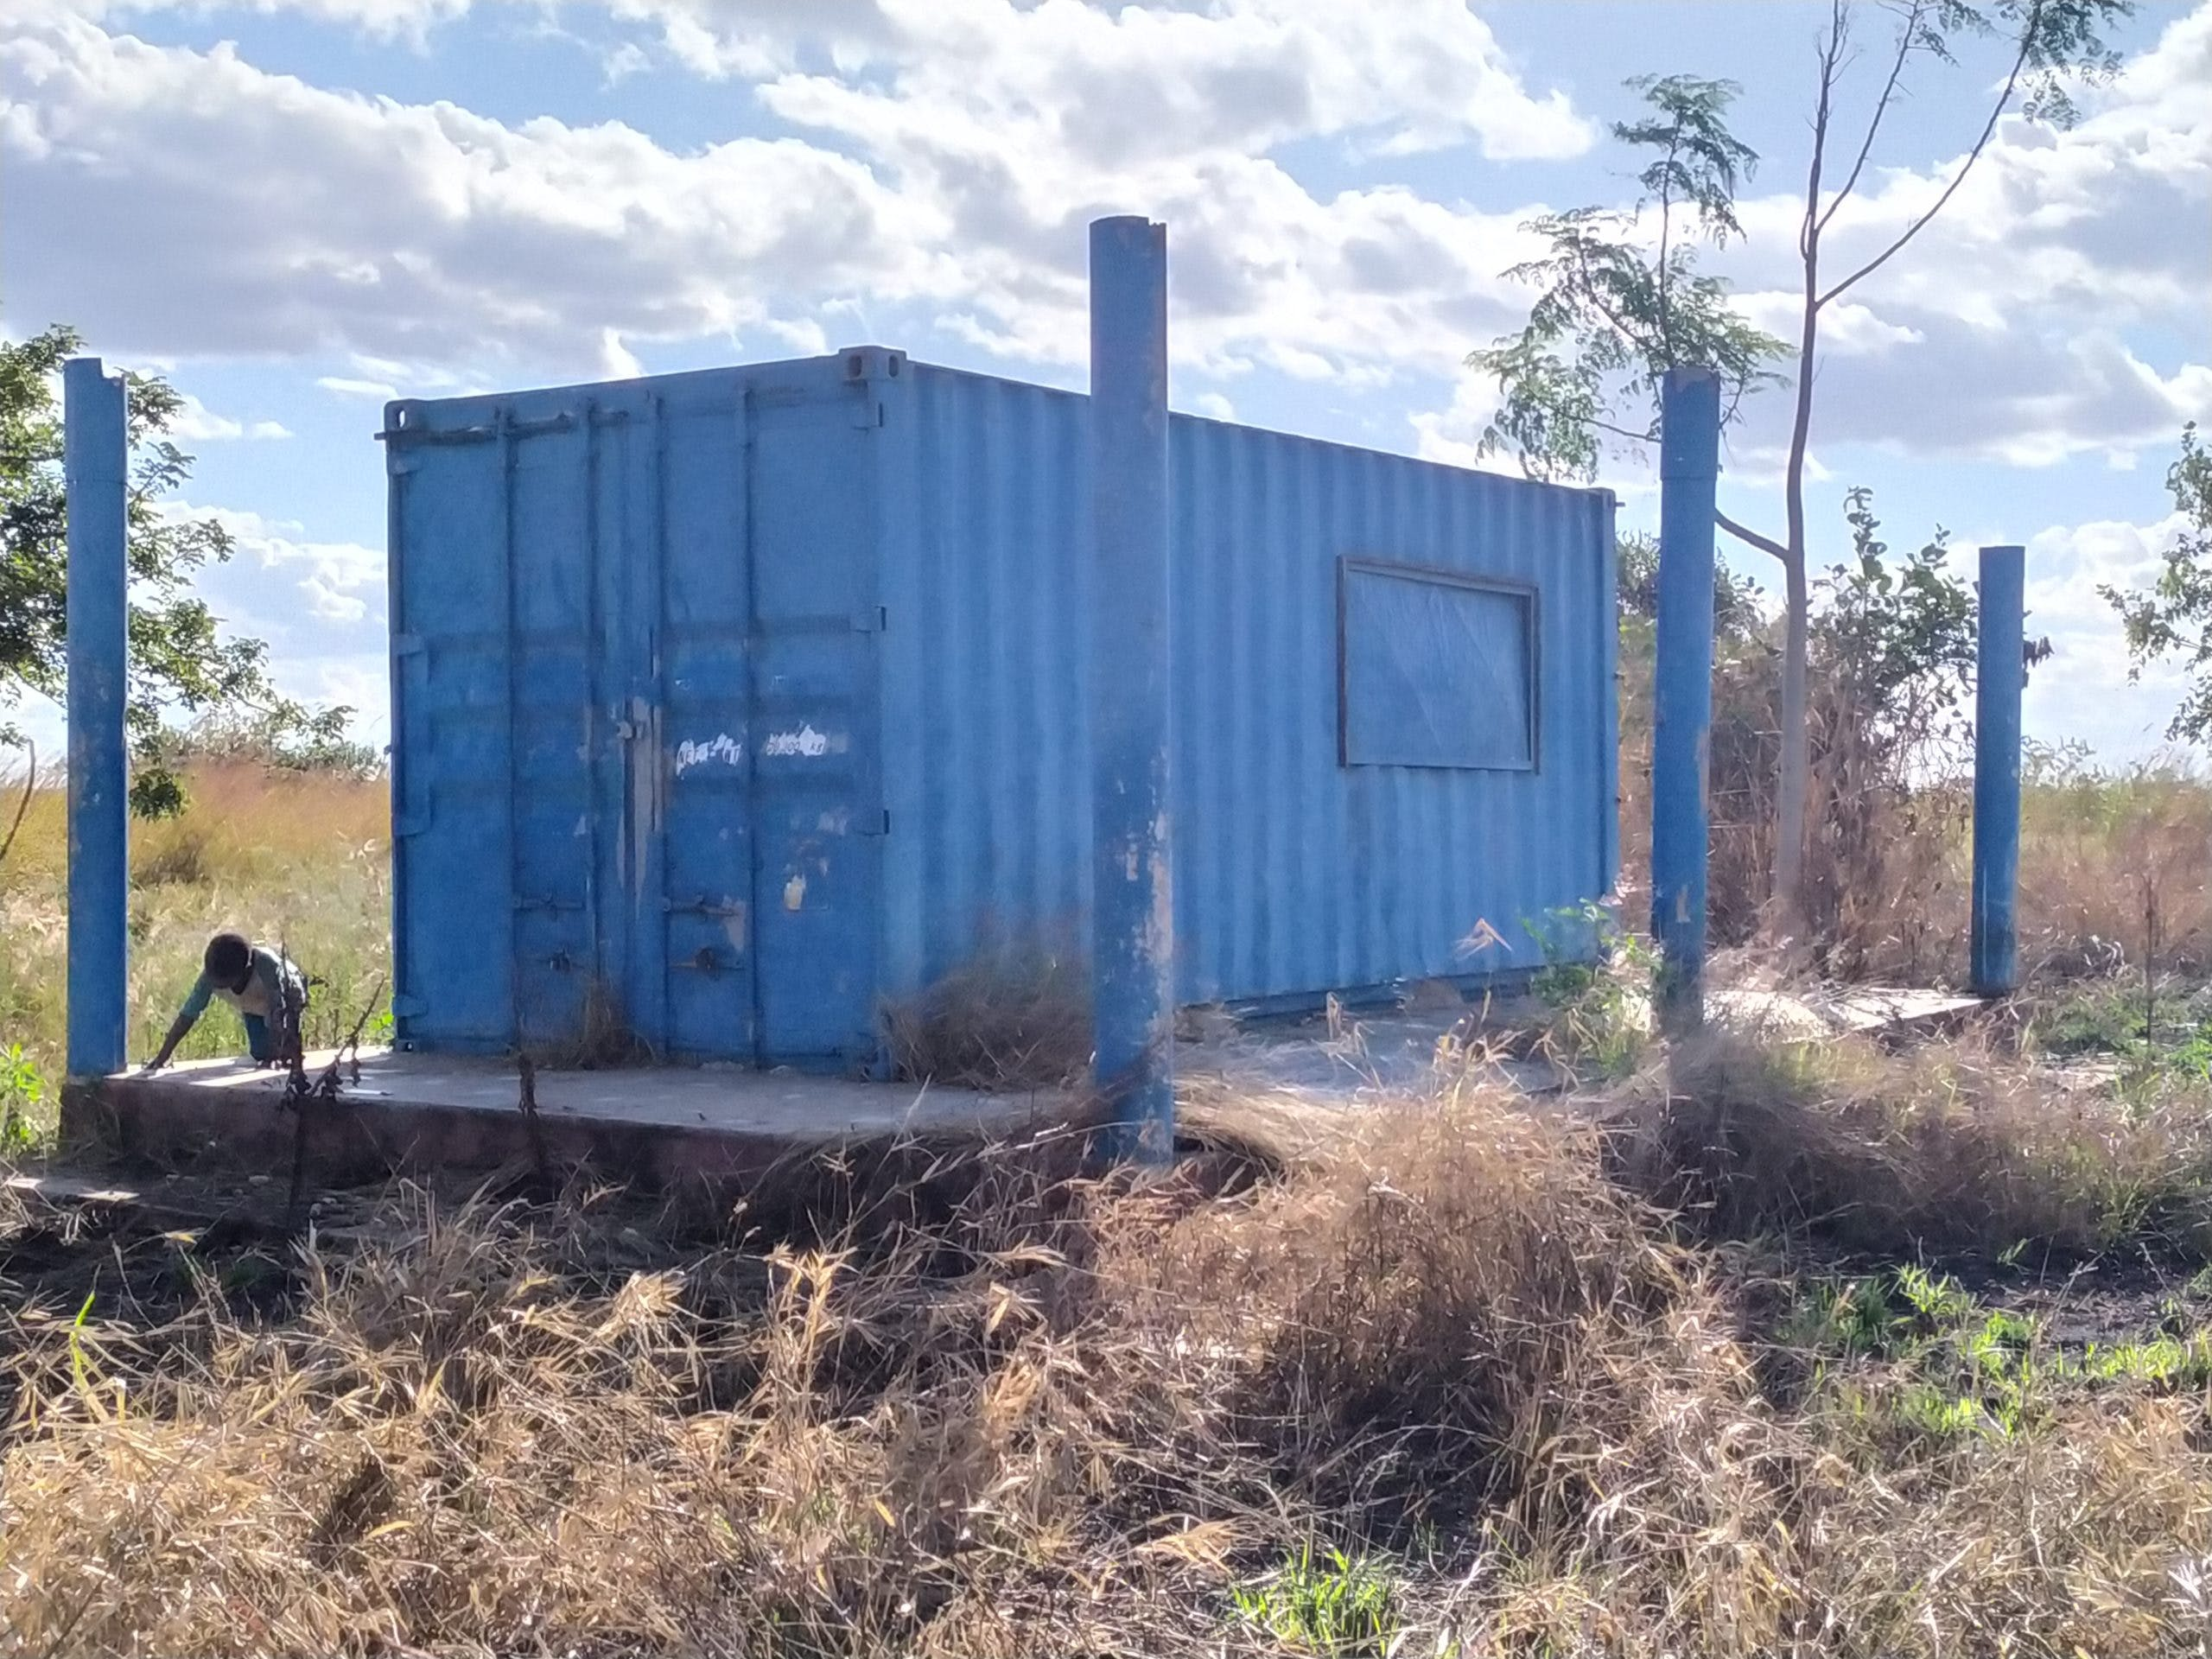 The 40-foot container Rosita and other families lived in after the cyclone destroyed homes.